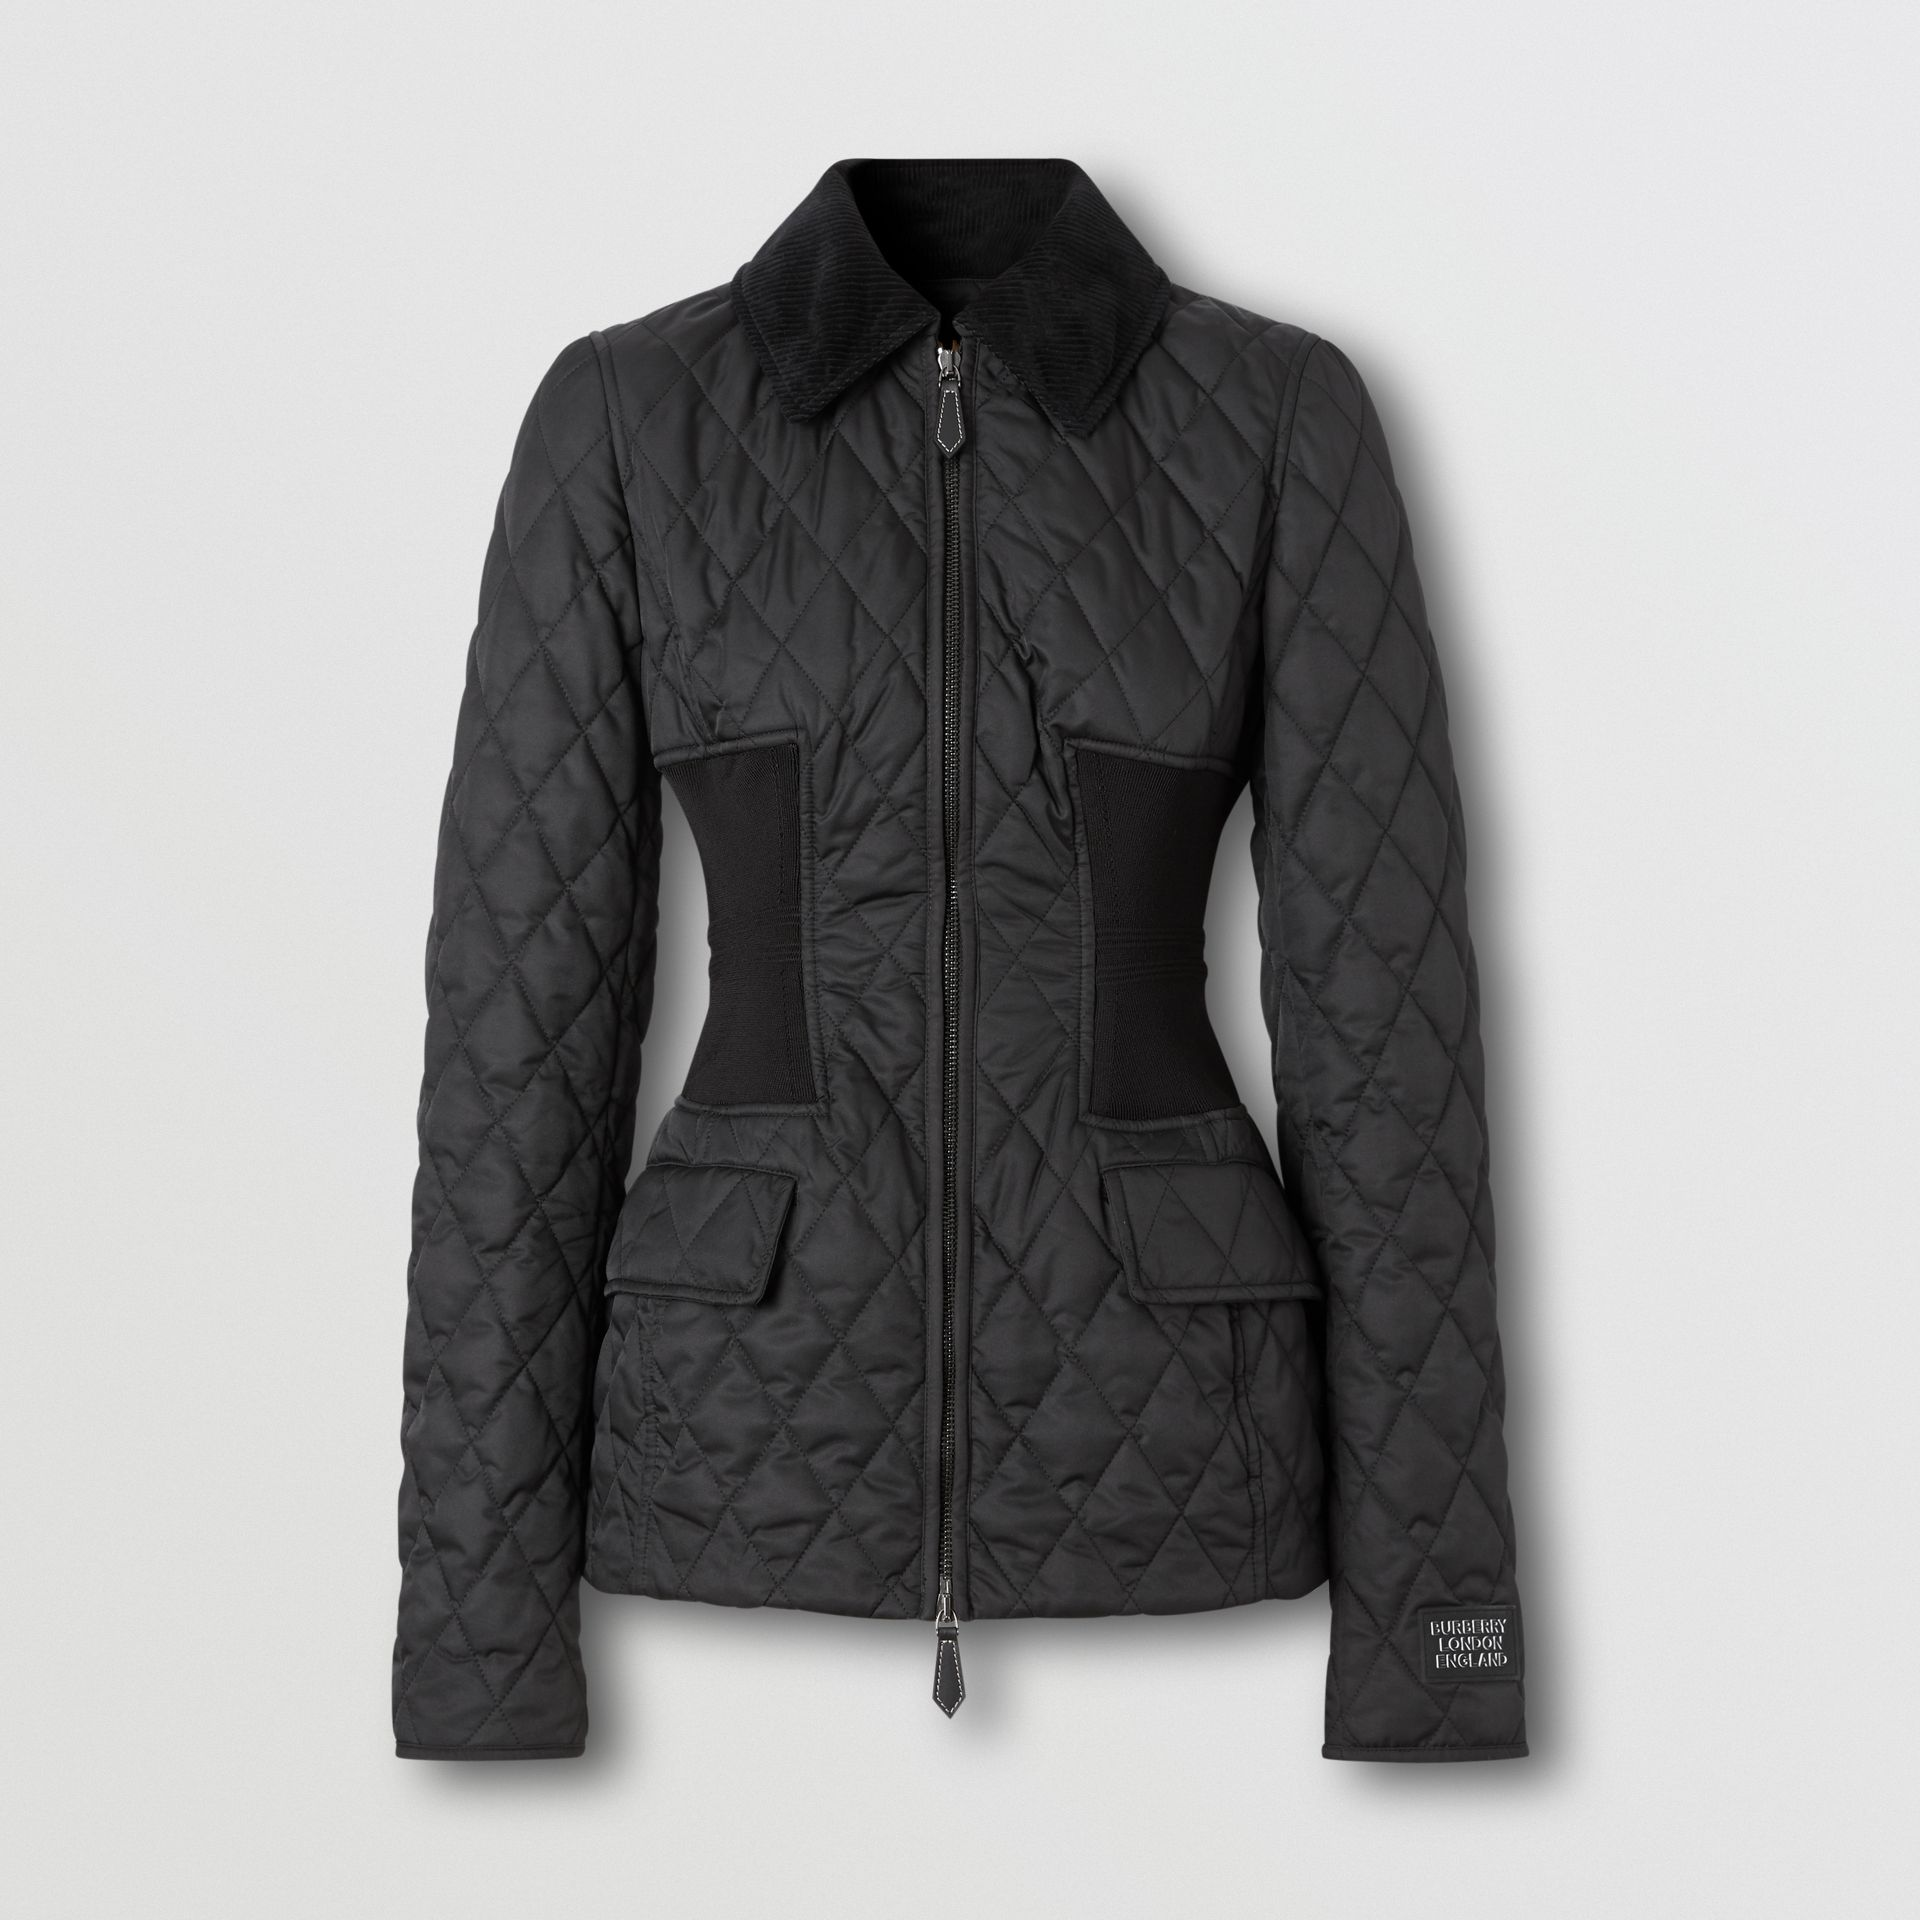 Rib Knit Panel Diamond Quilted Barn Jacket in Black - Women | Burberry United Kingdom - gallery image 3